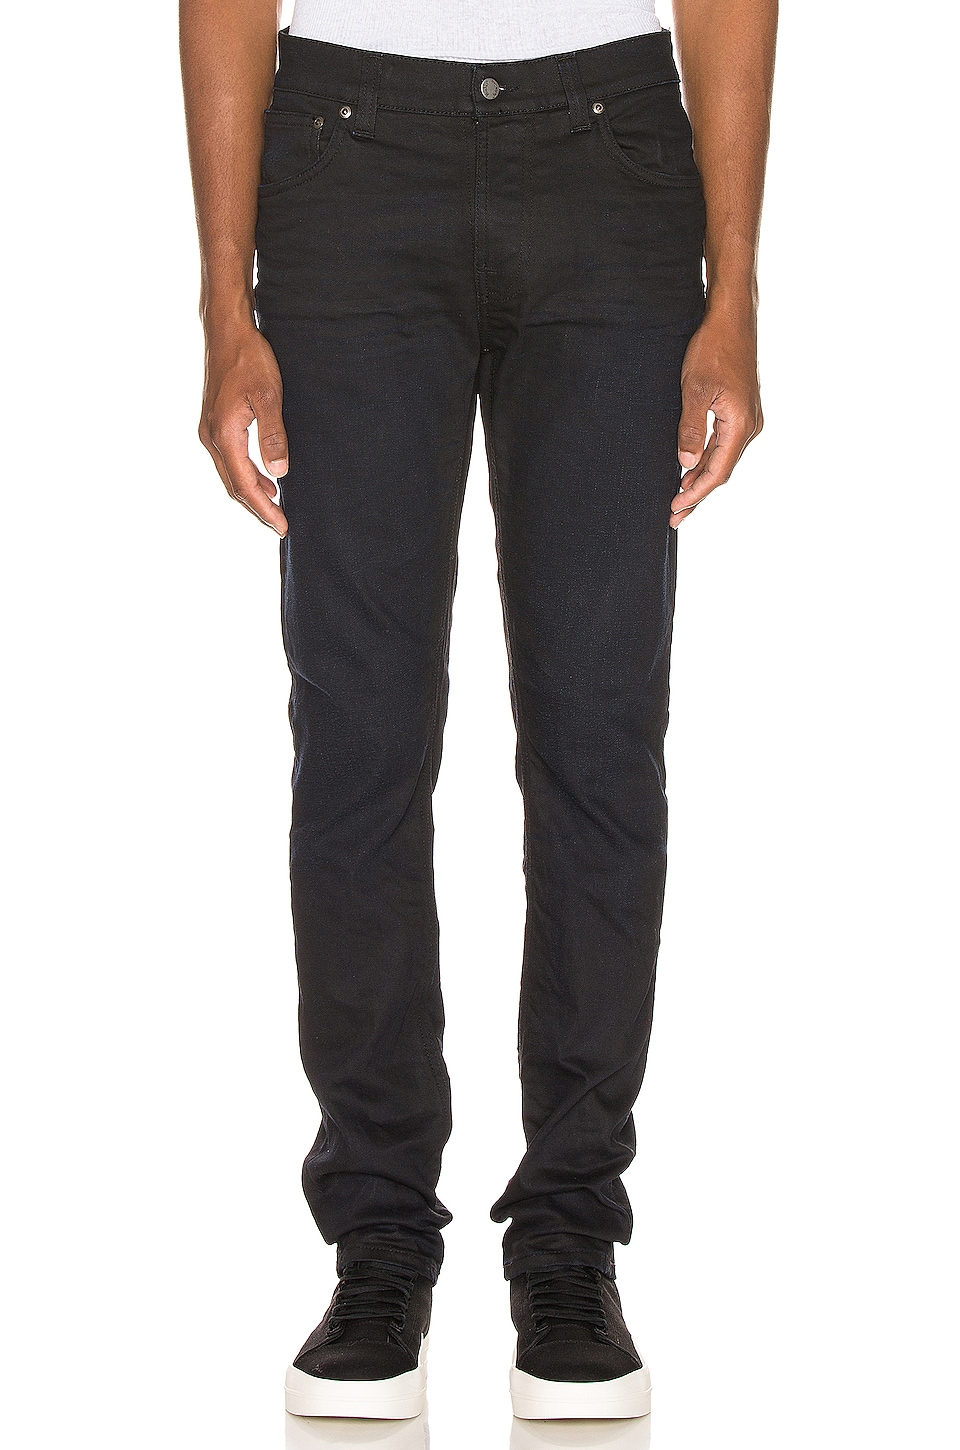 Nudie Jeans Thin Finn Worn in Black Coated